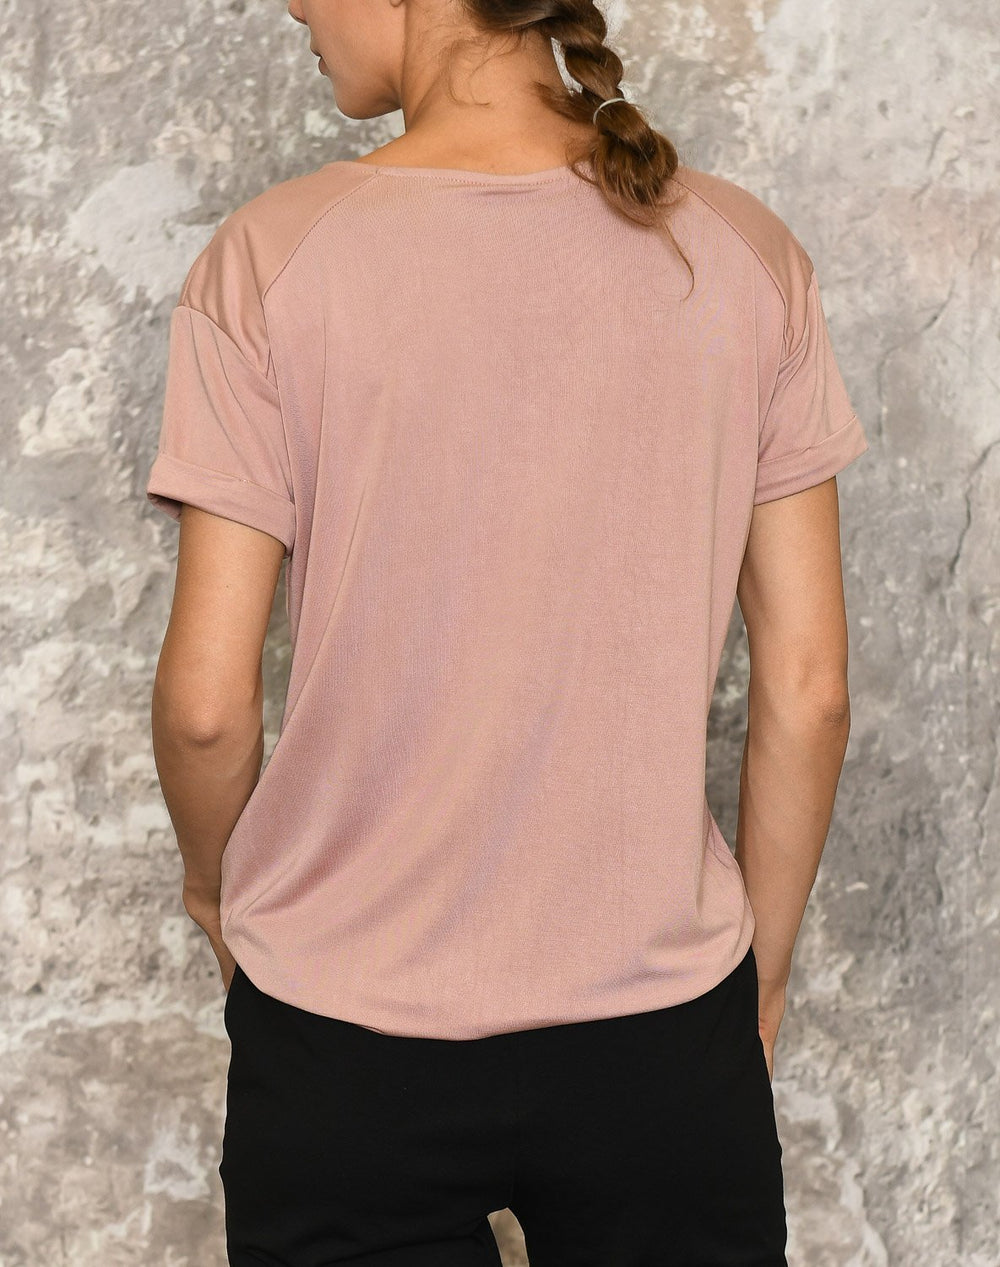 Luxzuz Karin t-shirt 1782 rose - Online-Mode